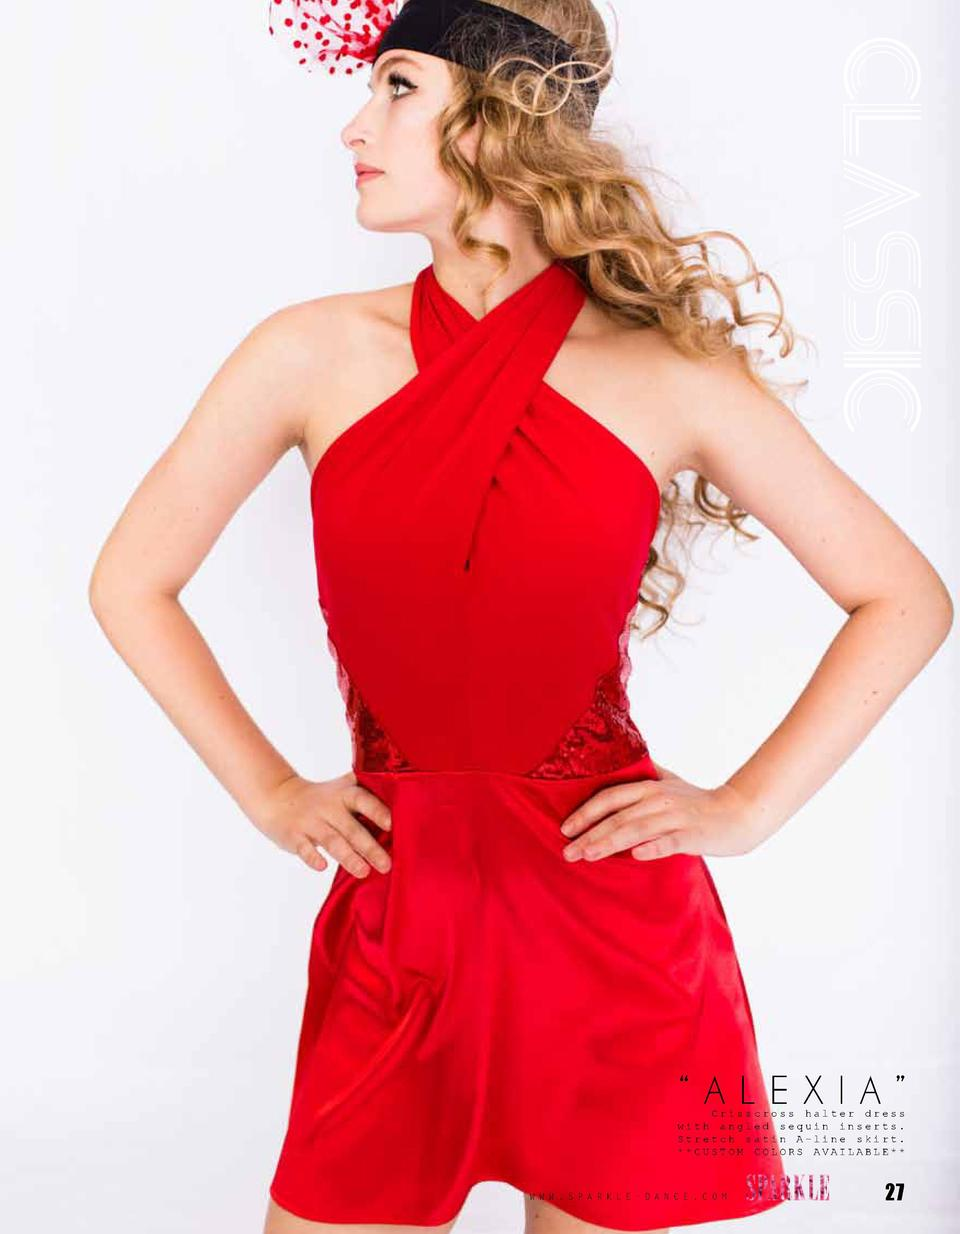 CLASSIC    ALEXIA     Crisscross halter dress with angled sequin inserts. Stretch satin A-line skirt.   CUSTOM COLORS AVAI...